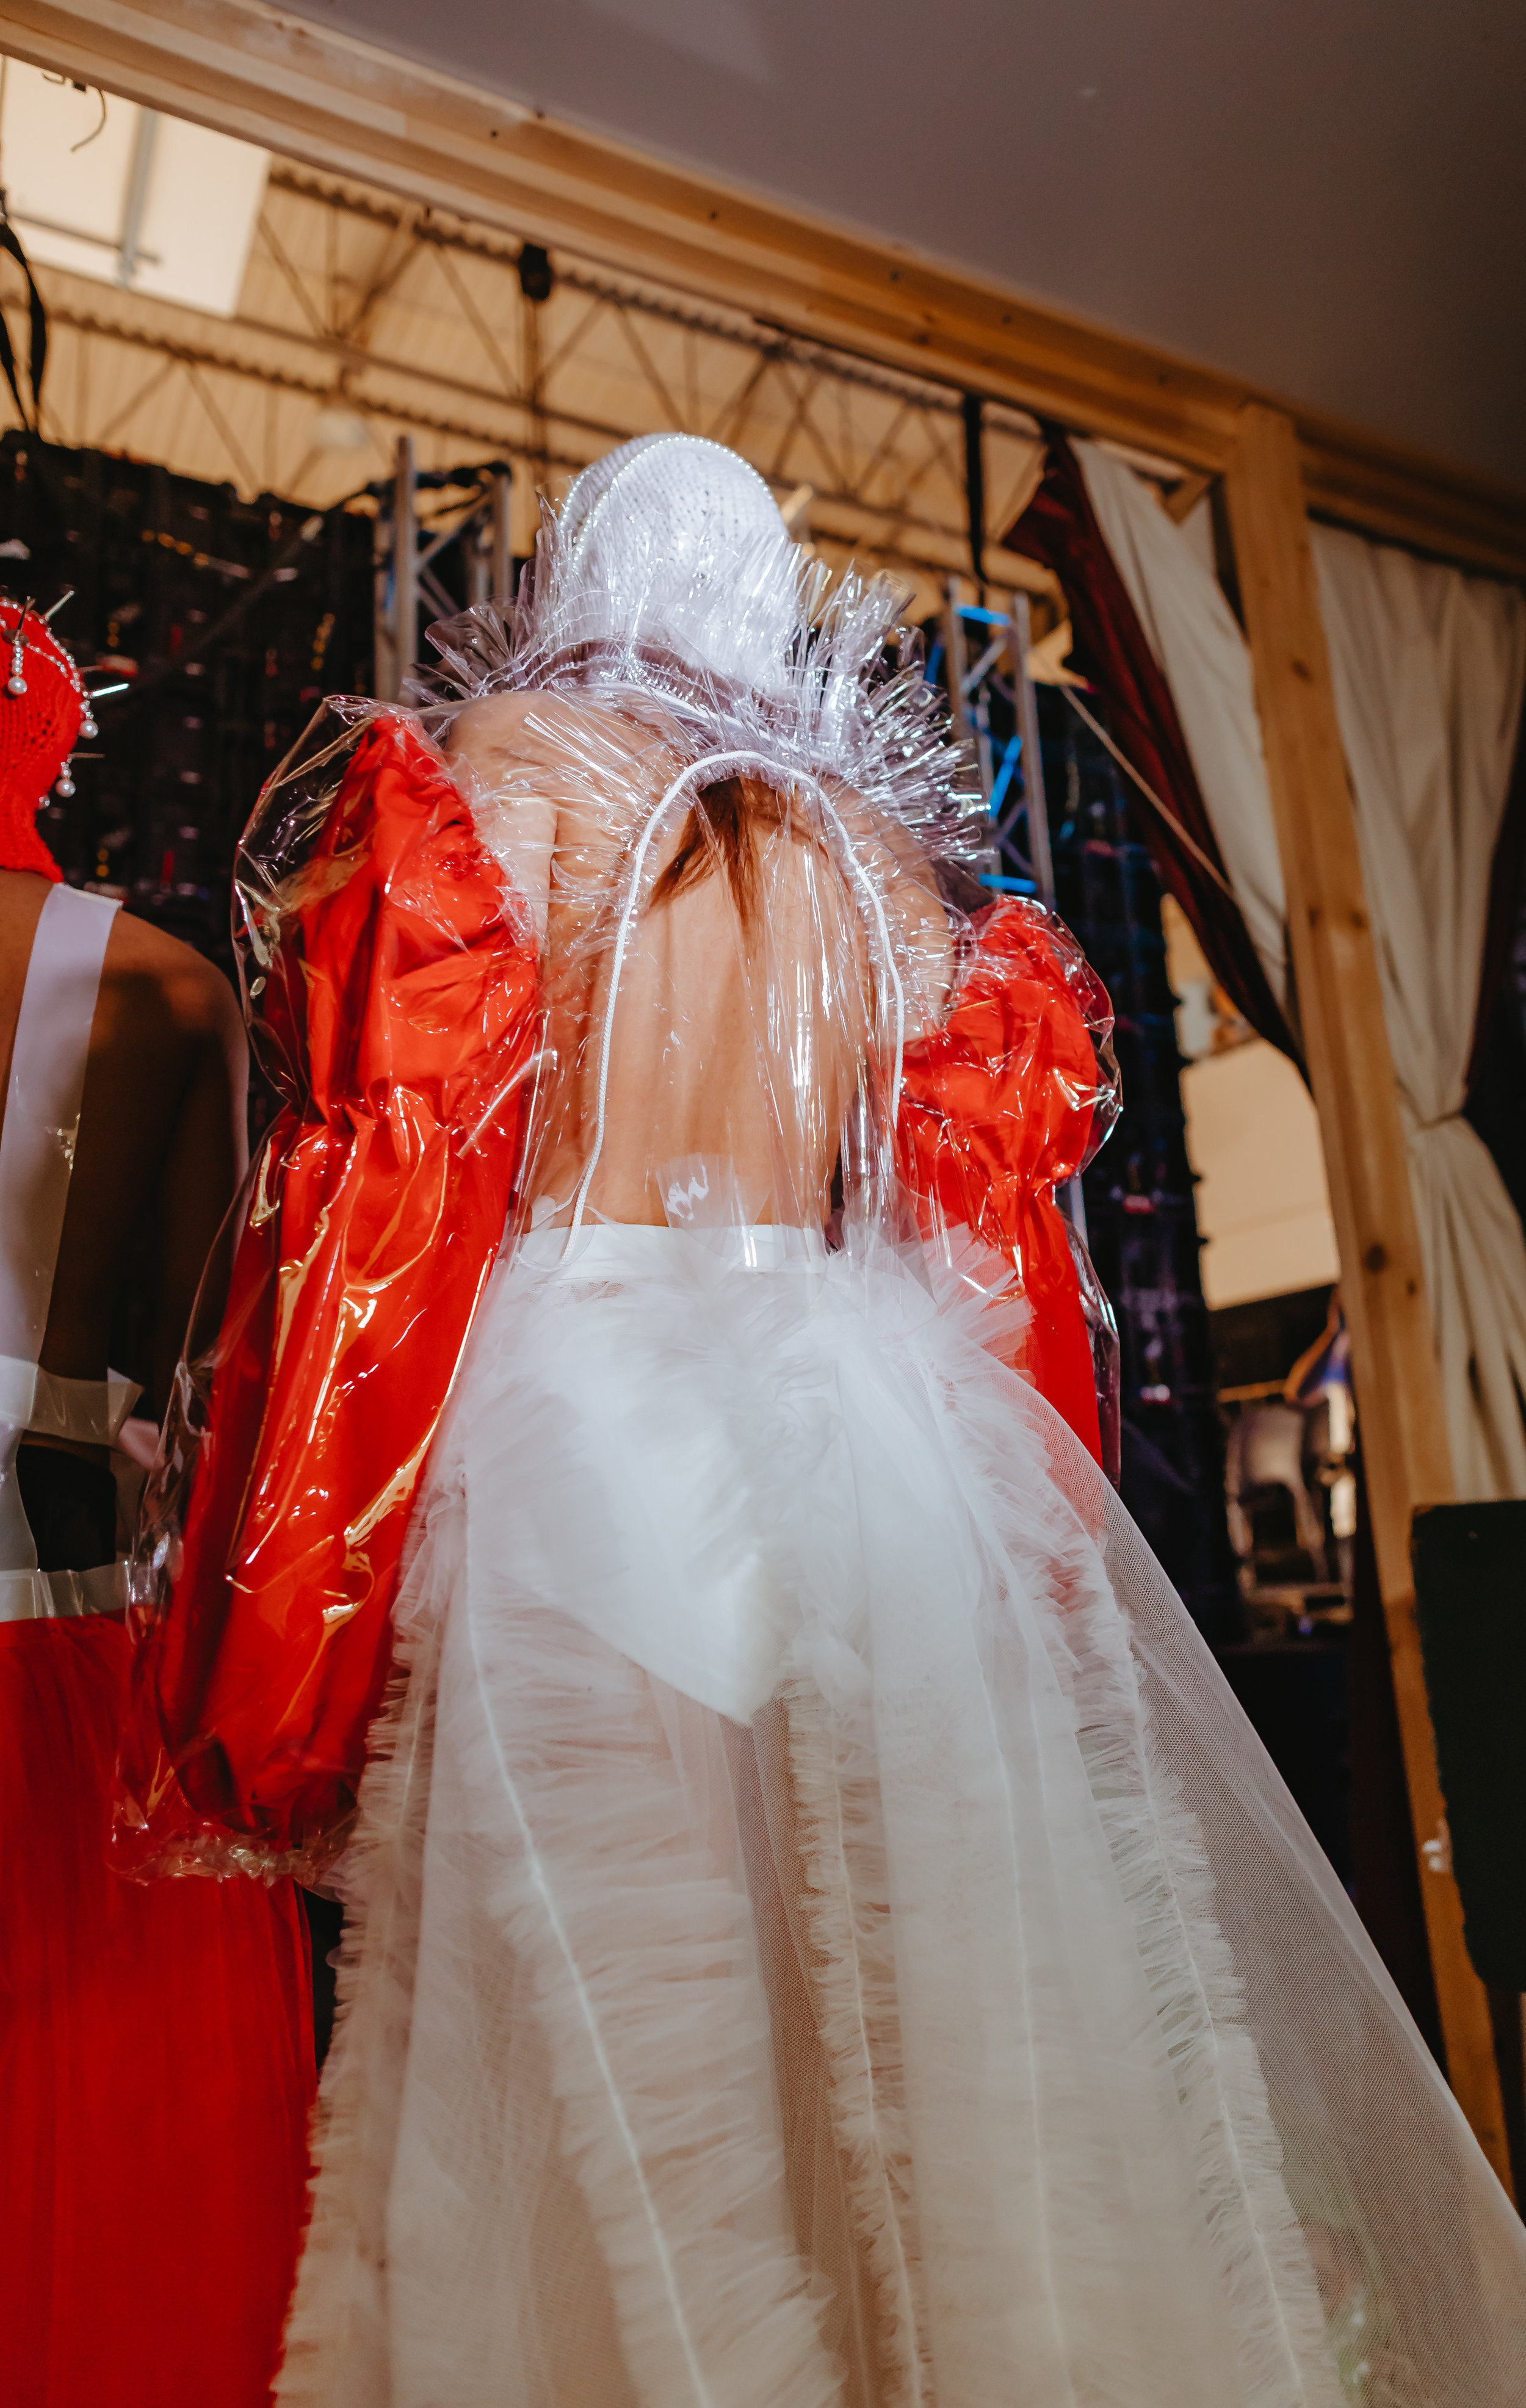 Through the Lens - At Vancouver Fashion Week 2019